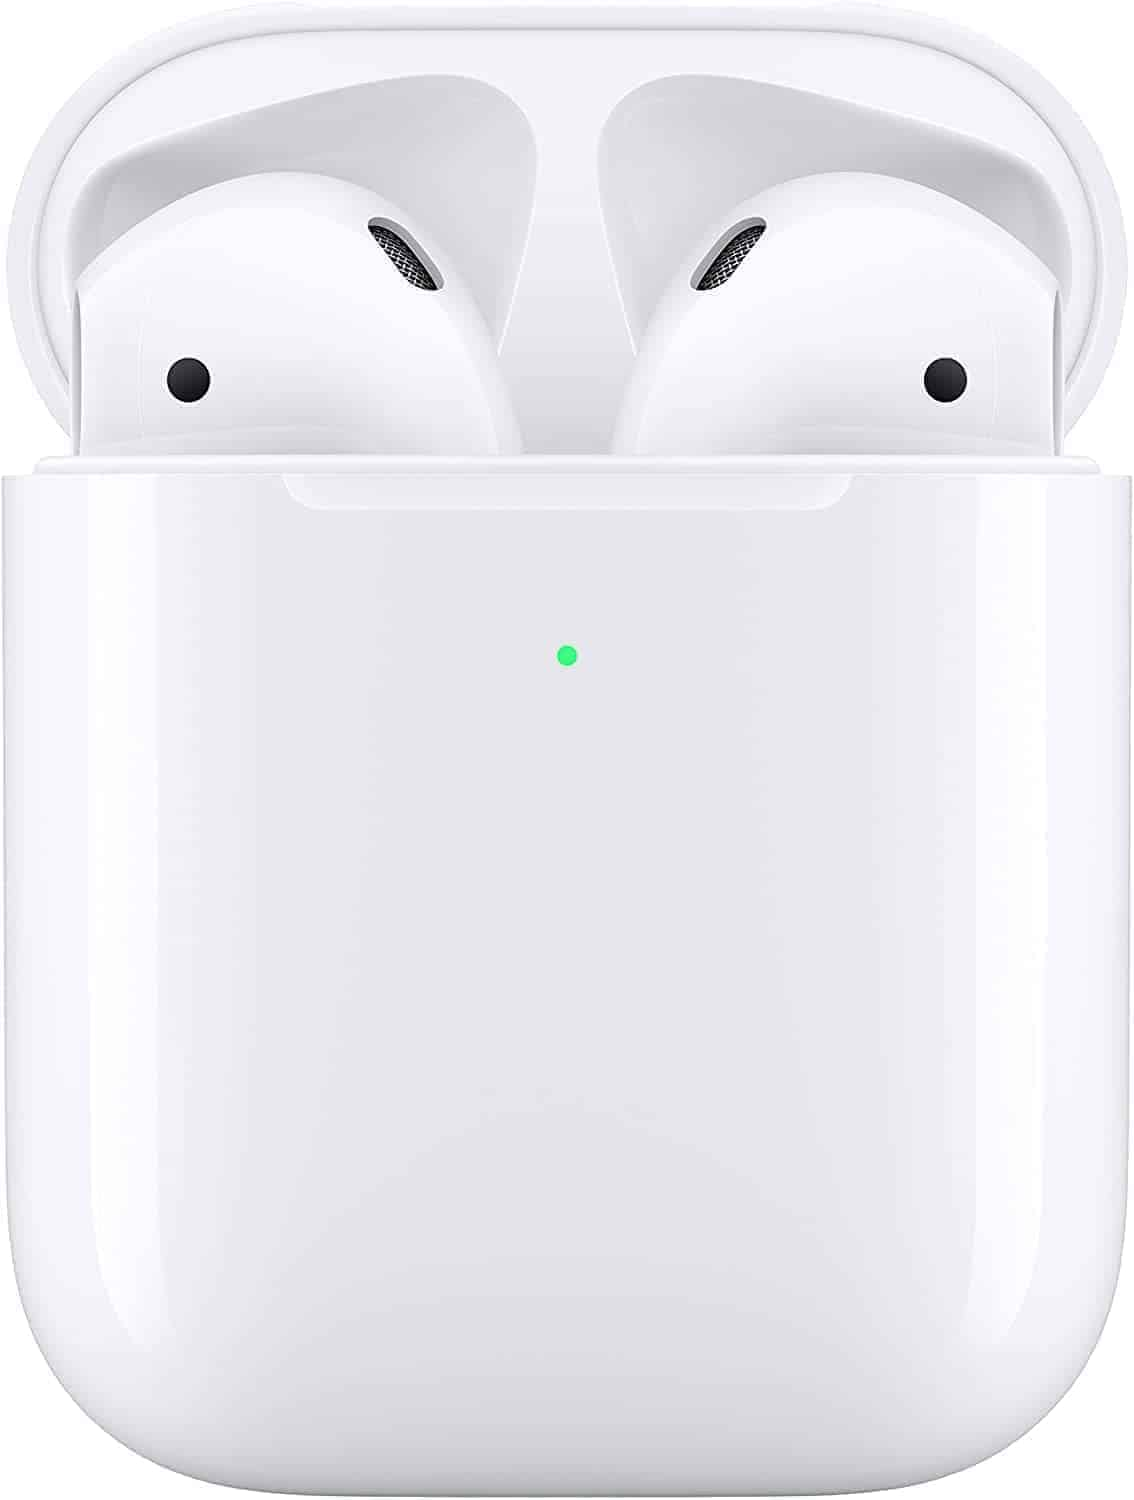 Apple-AirPods-Fathers-Day-Gift-Ideas